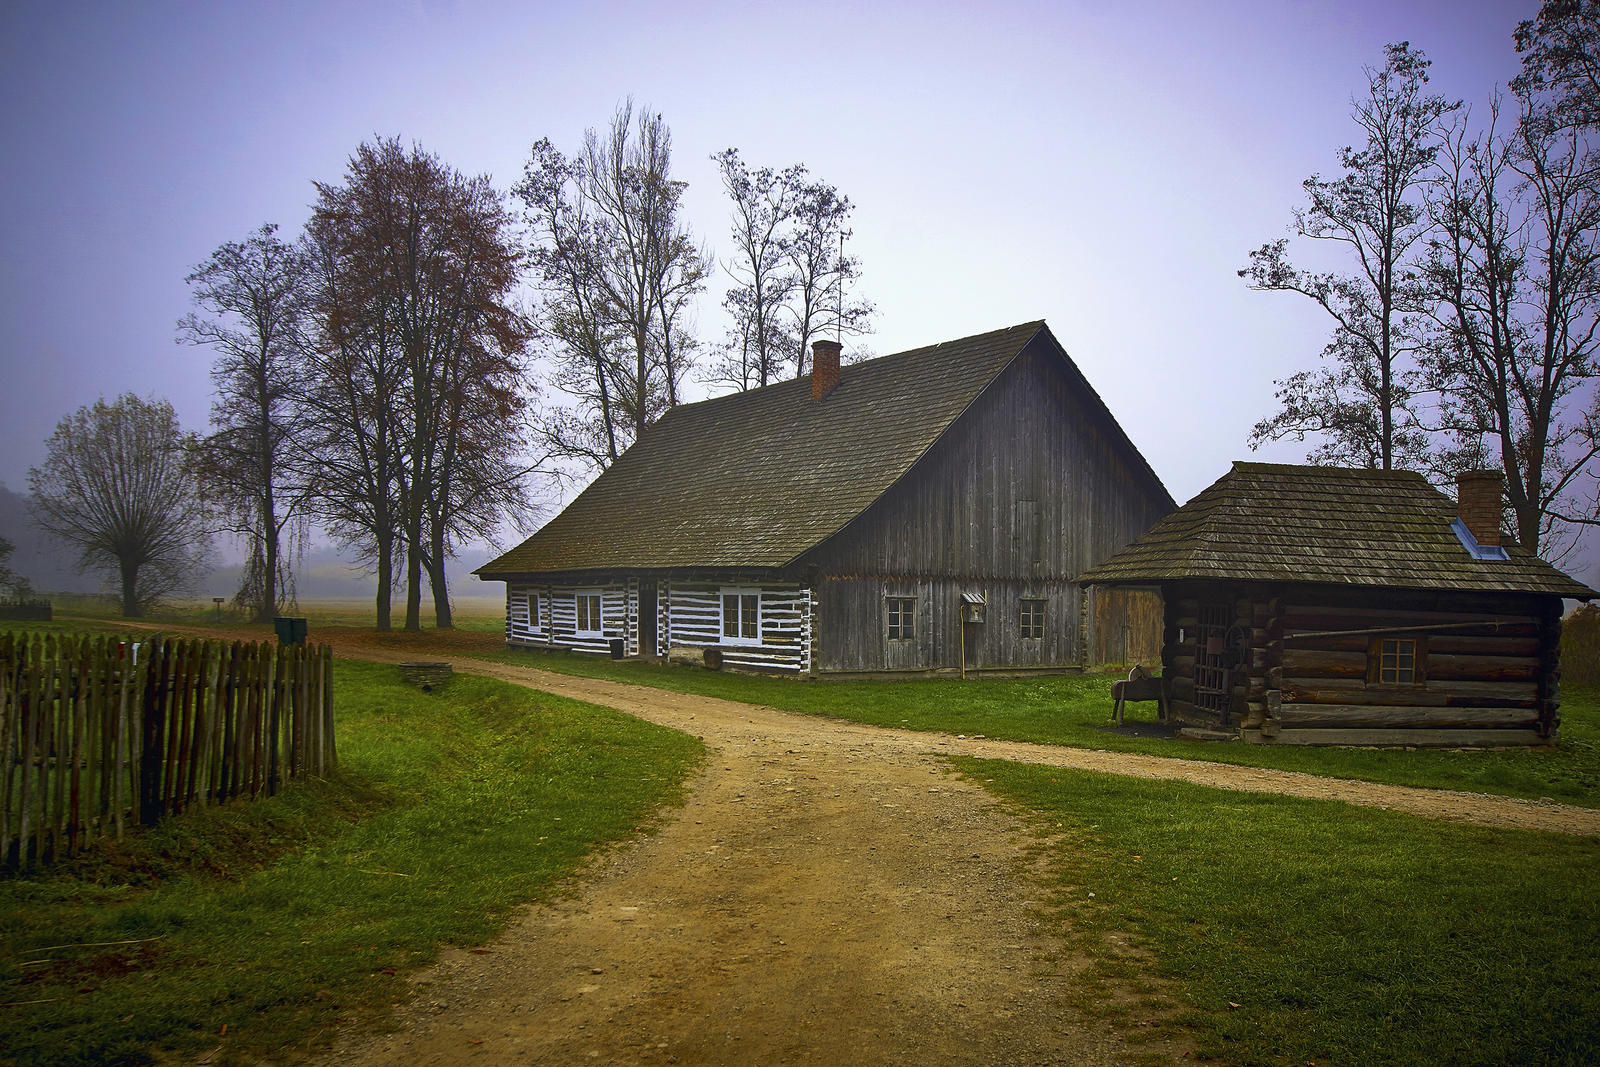 Old country homes by citizenfresh on deviantart for Old country homes